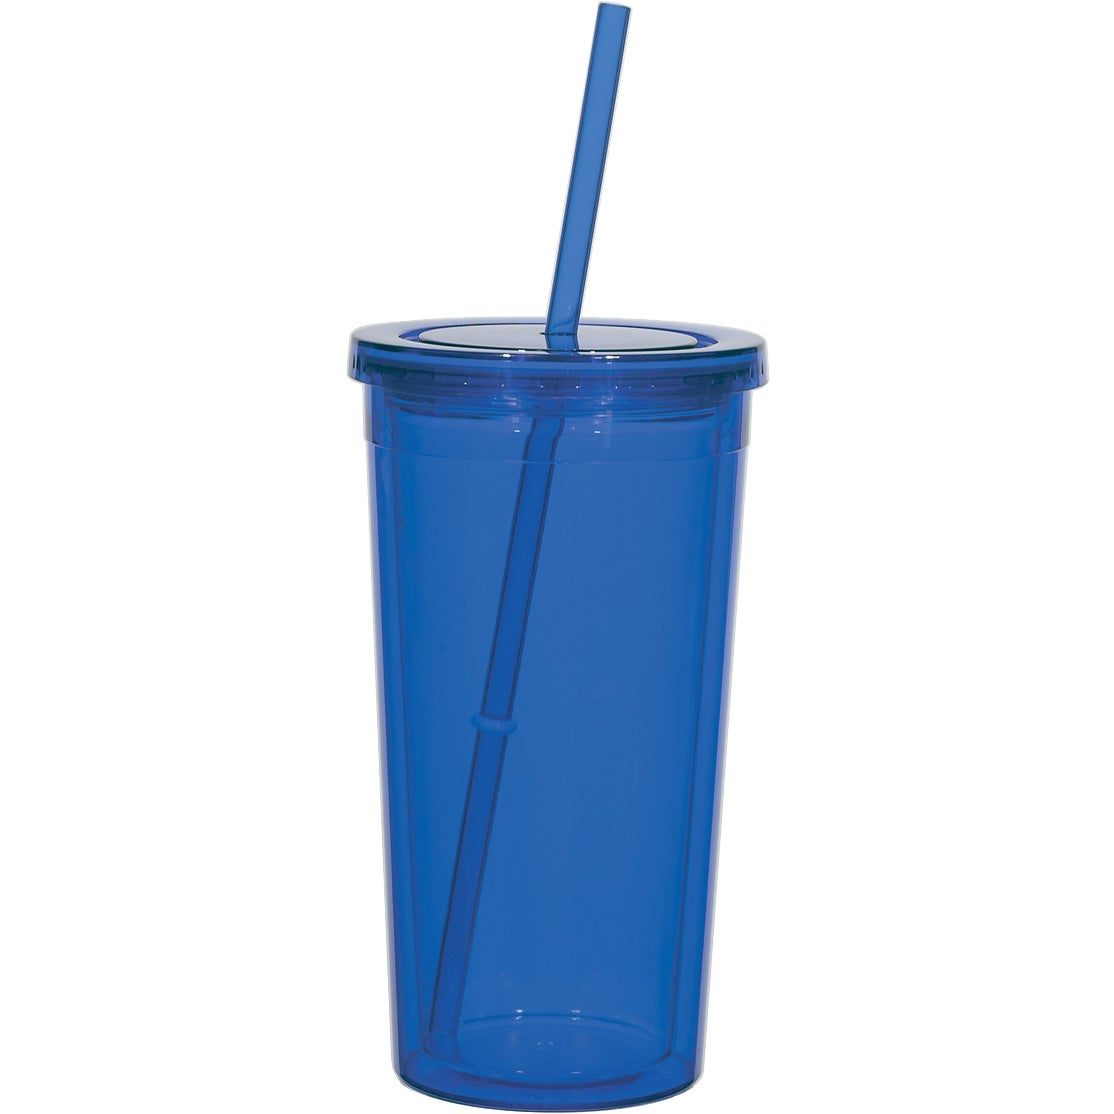 fb4f85e6653 CLICK HERE to Order 24 Oz. Newport Acrylic Tumblers Printed with ...